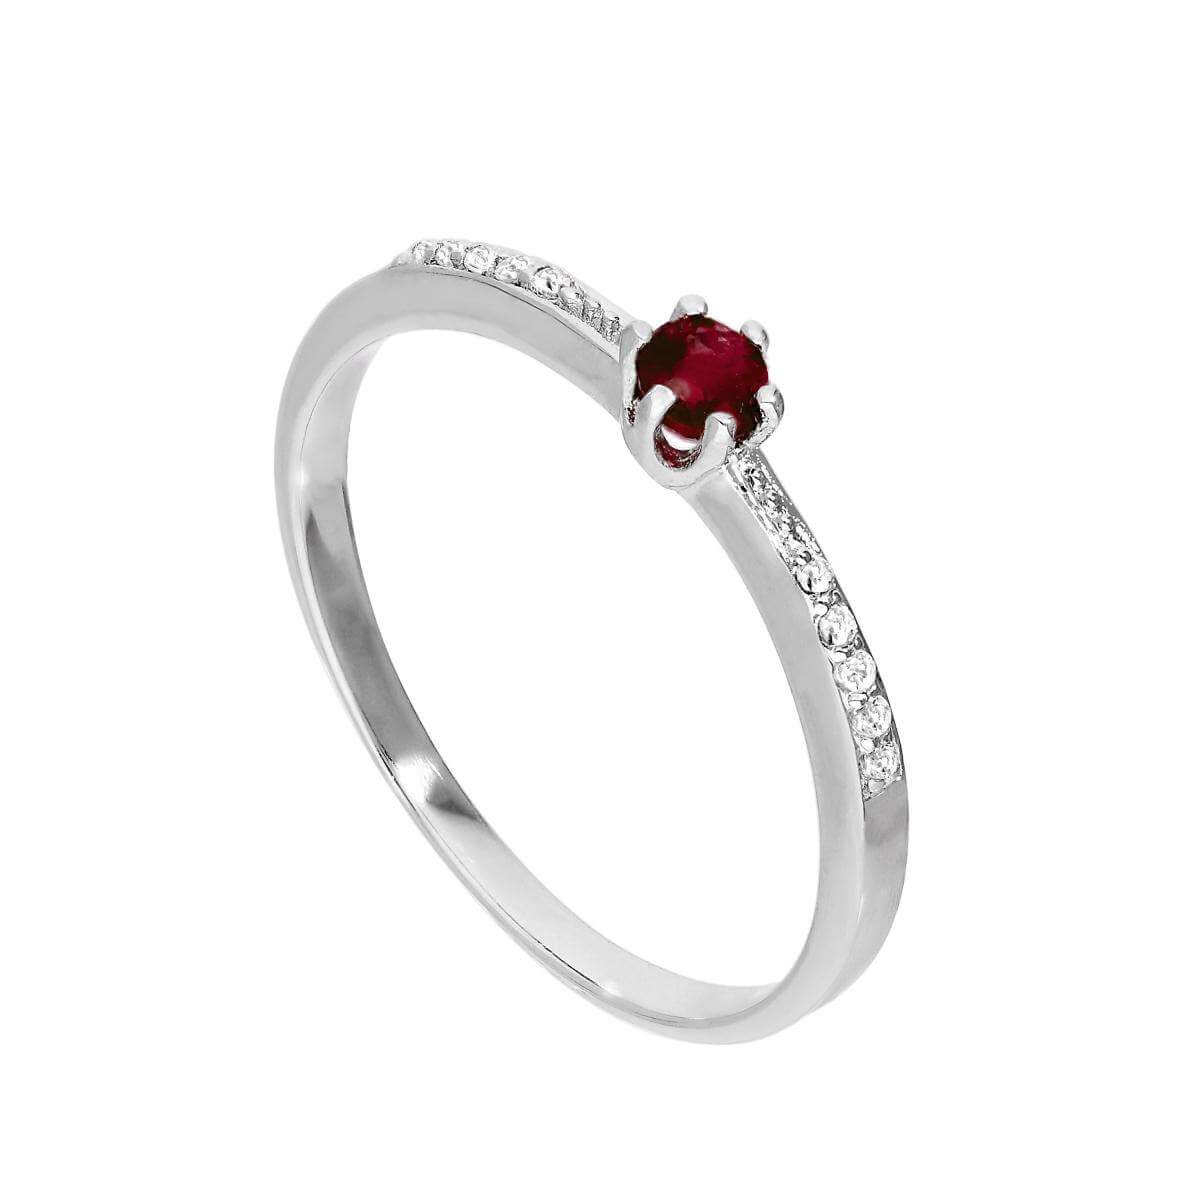 Sterling Silver Genuine Garnet Gemstone & CZ Crystal Solitaire Ring Sizes K - U